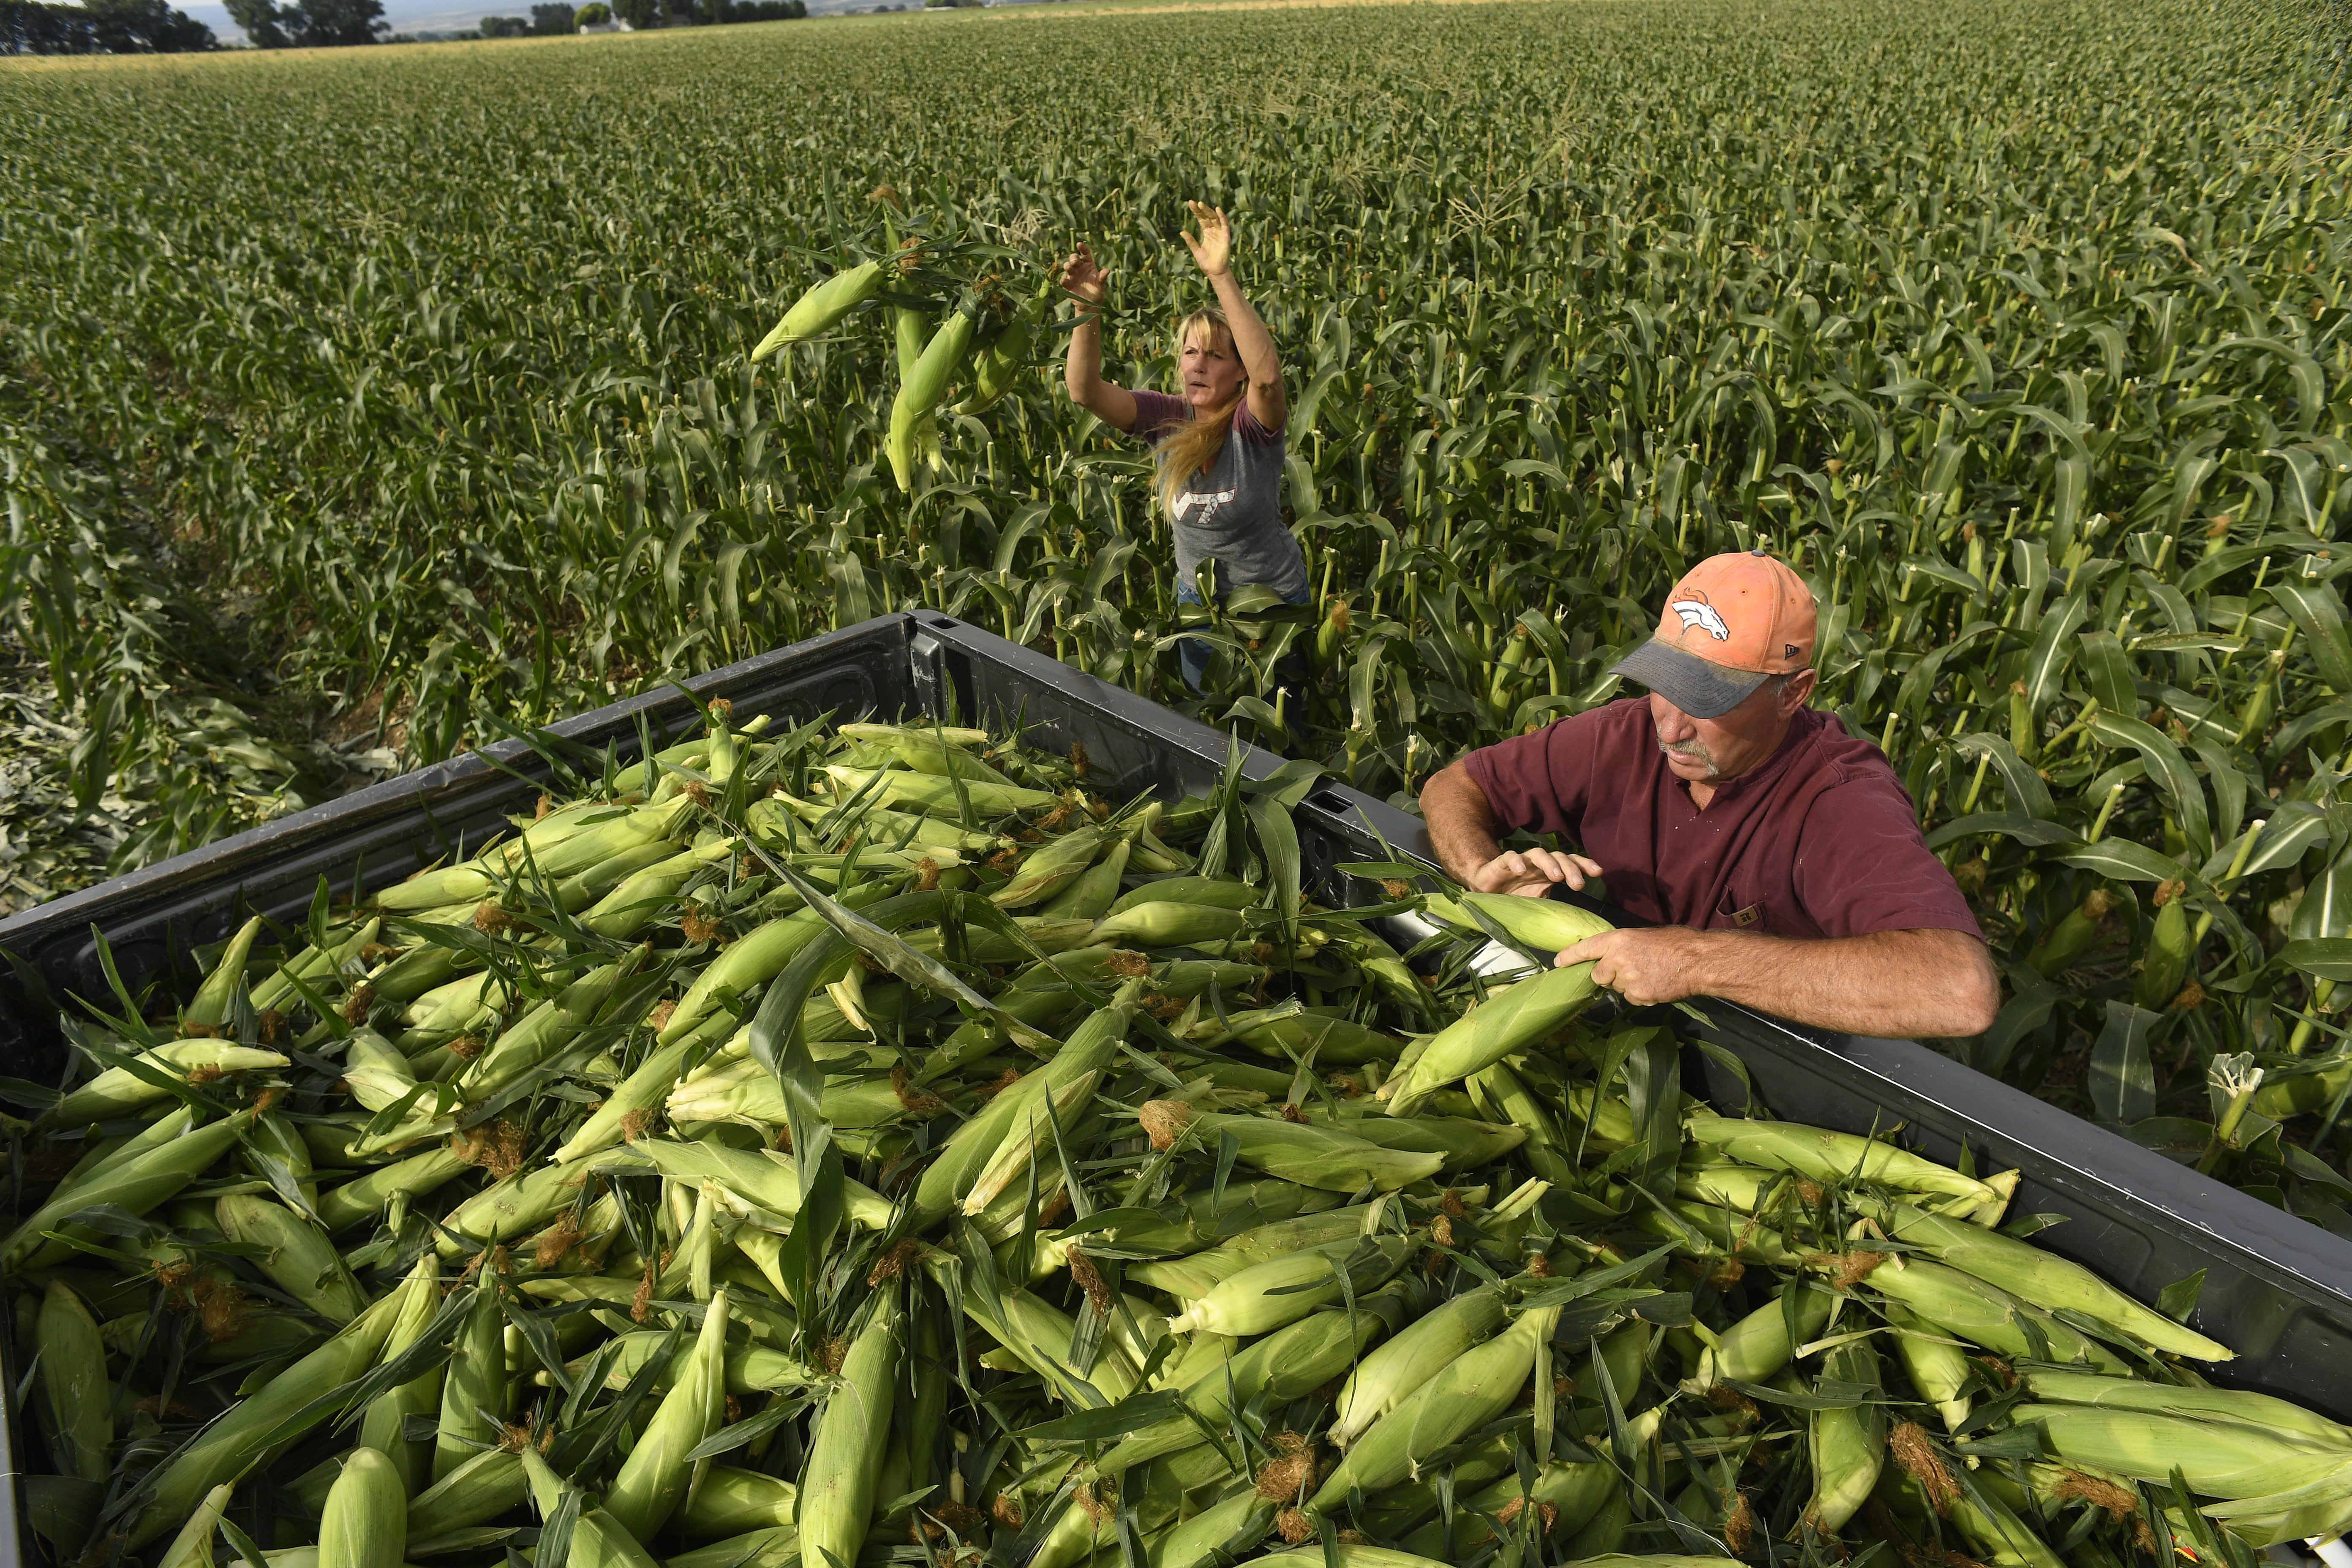 Corn futures fall after USDA forecasts bigger-than-expected US crop